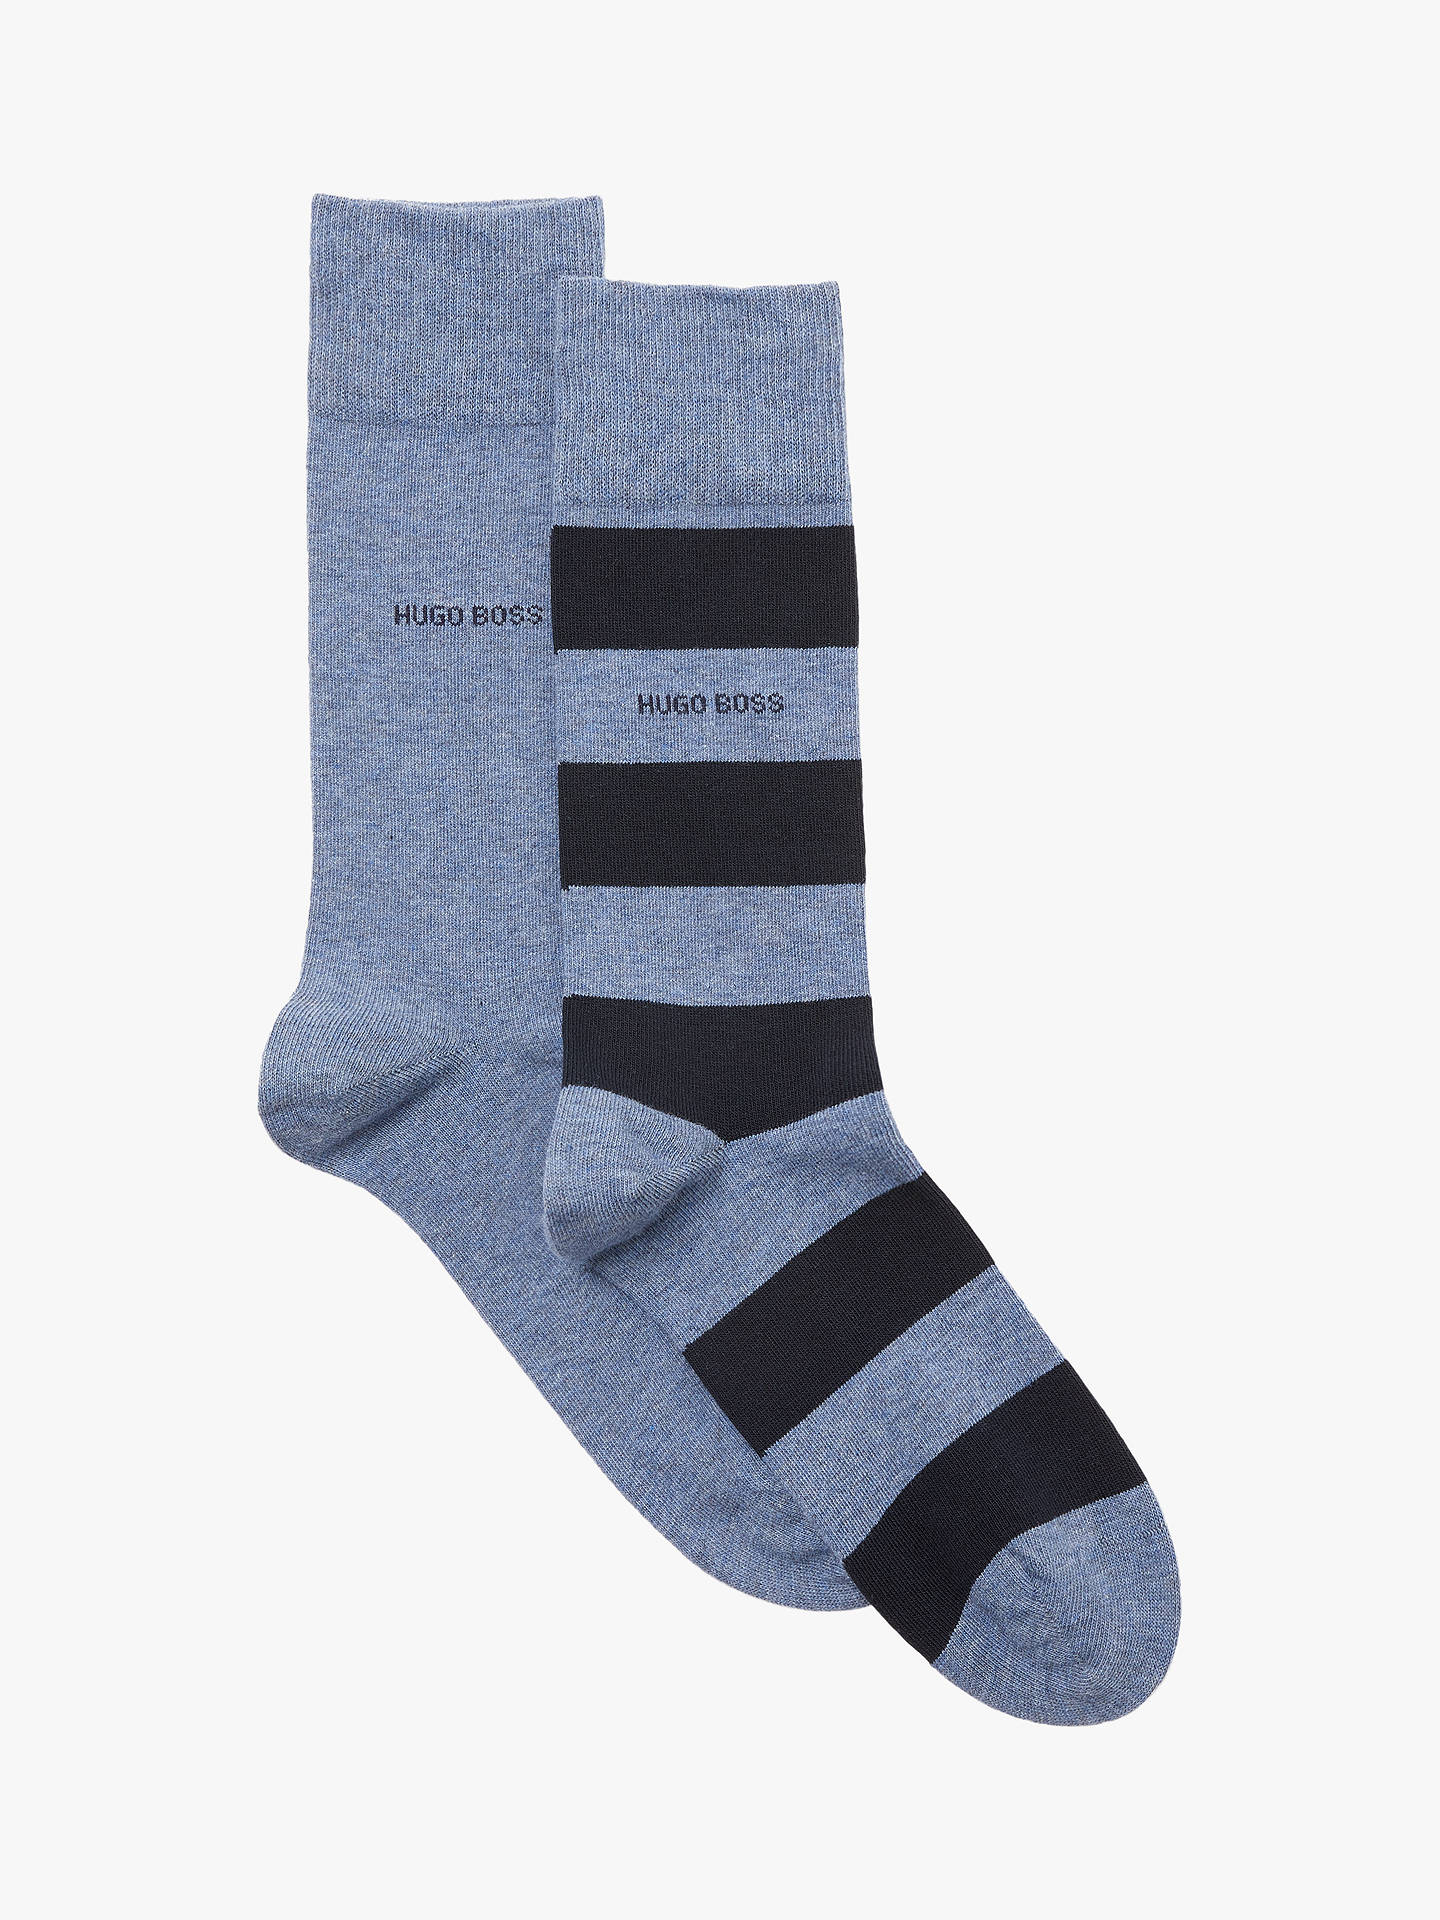 Buy BOSS Denim Stripe Socks, Pack of 2, Blue, M Online at johnlewis.com